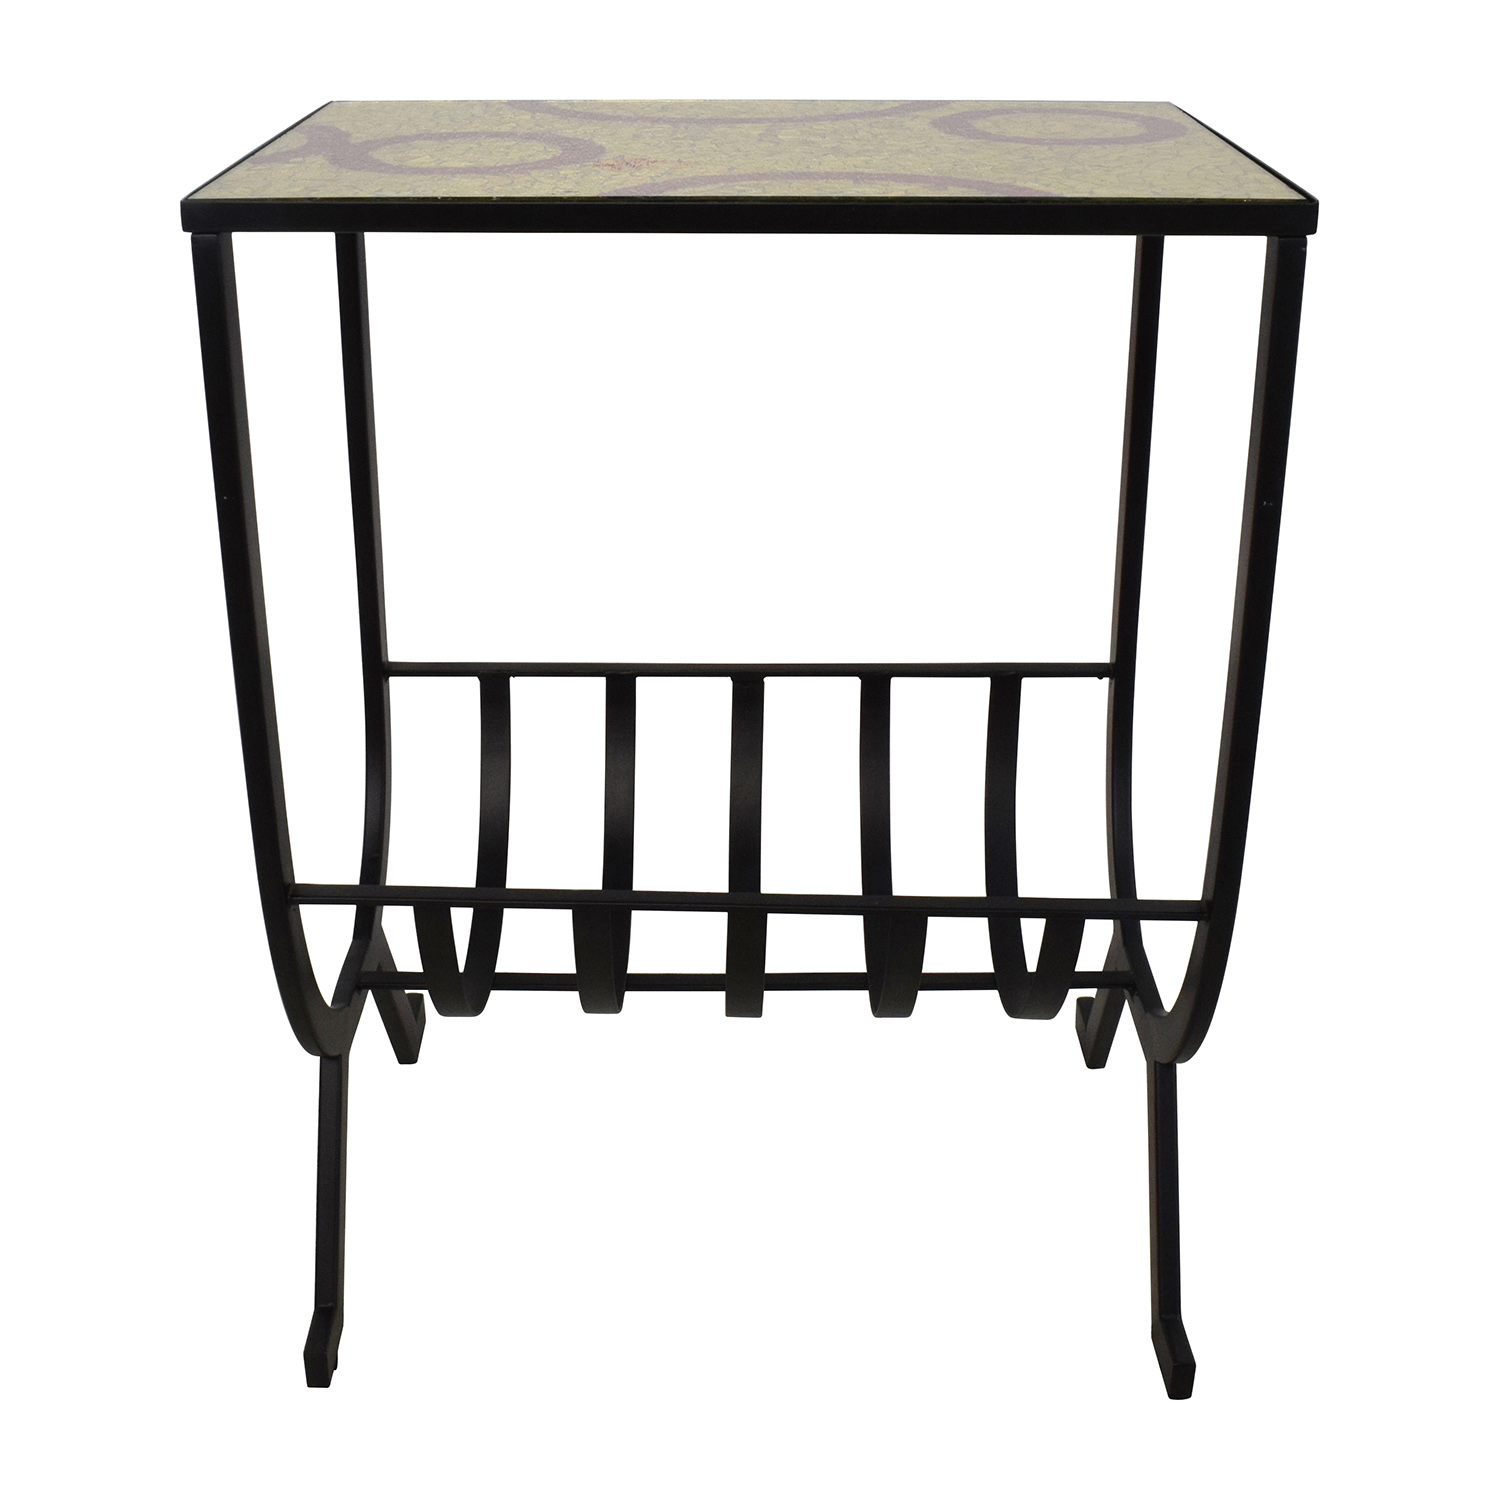 off pier mosaic magazine accent table tables outdoor end tall narrow coffee wicker with glass top west elm morten lamp nesting dining and chairs vintage metal two door cabinet